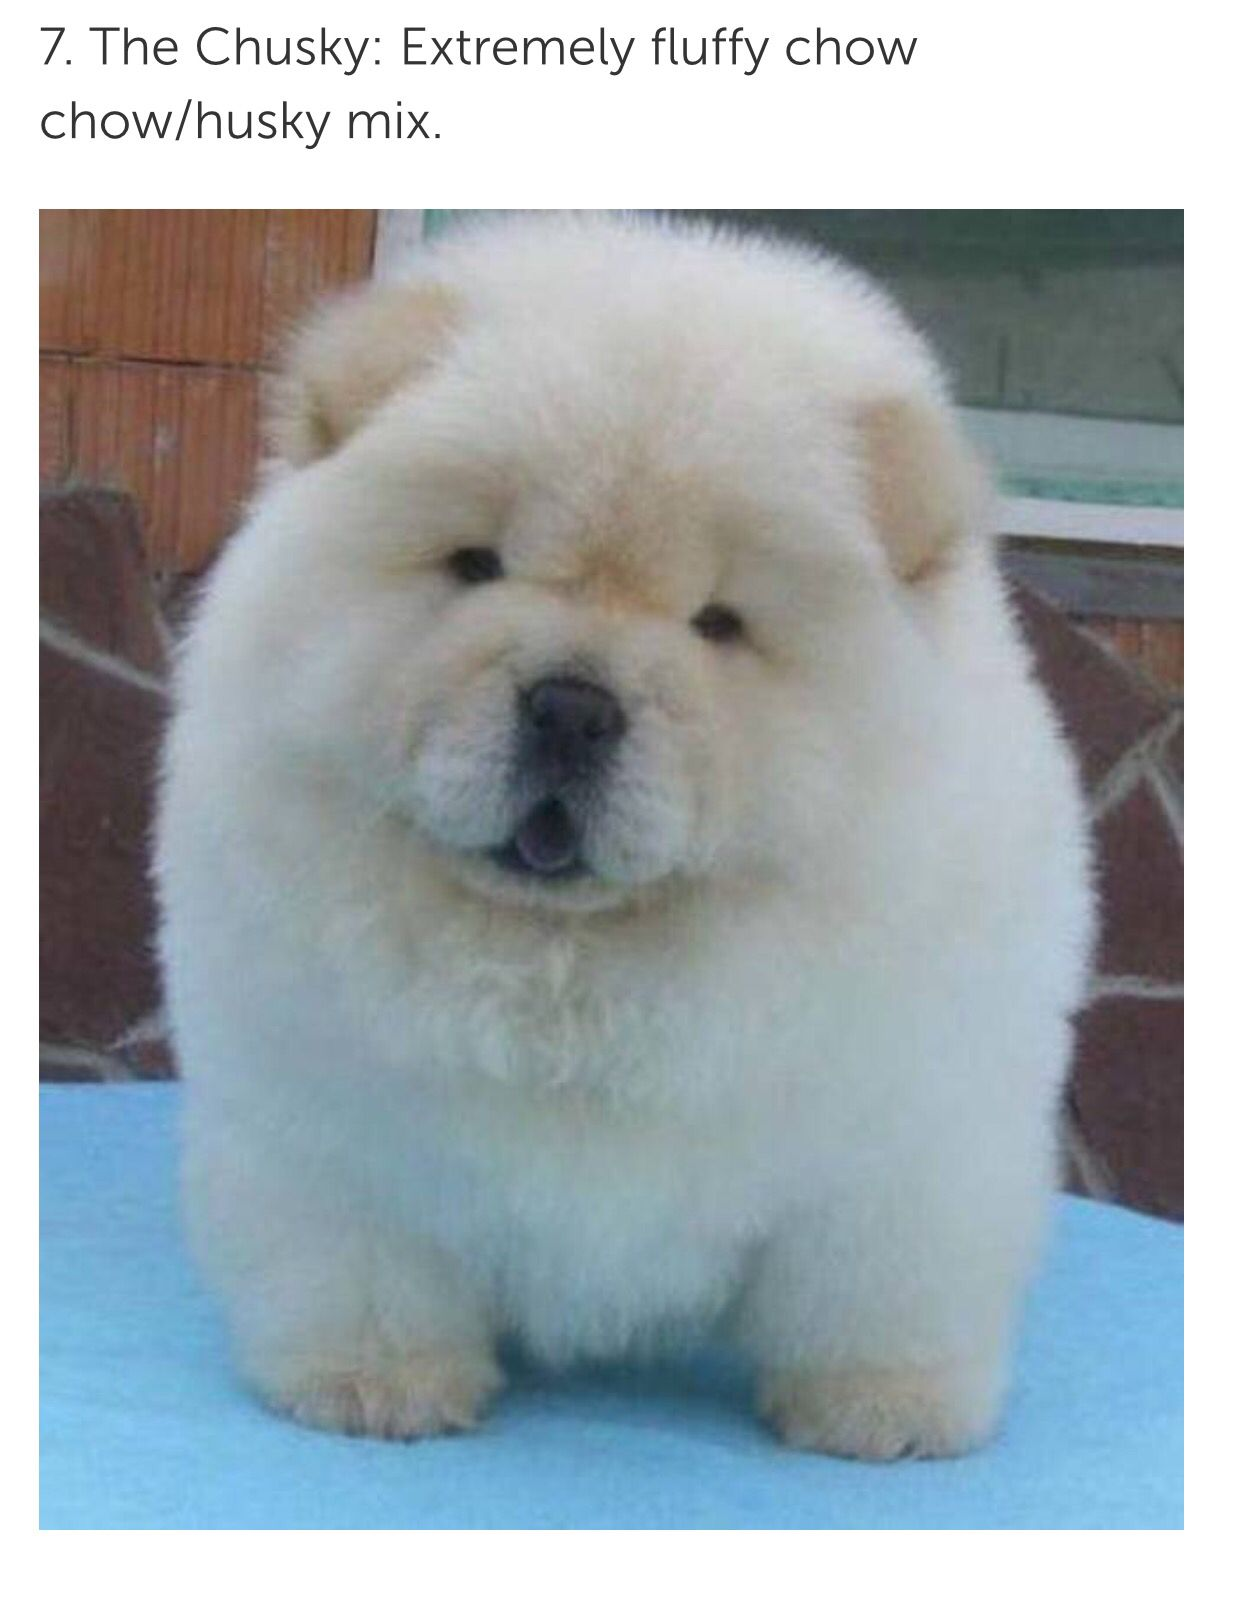 Chusky Chow Chow Puppy Cute Dogs Cute Baby Animals